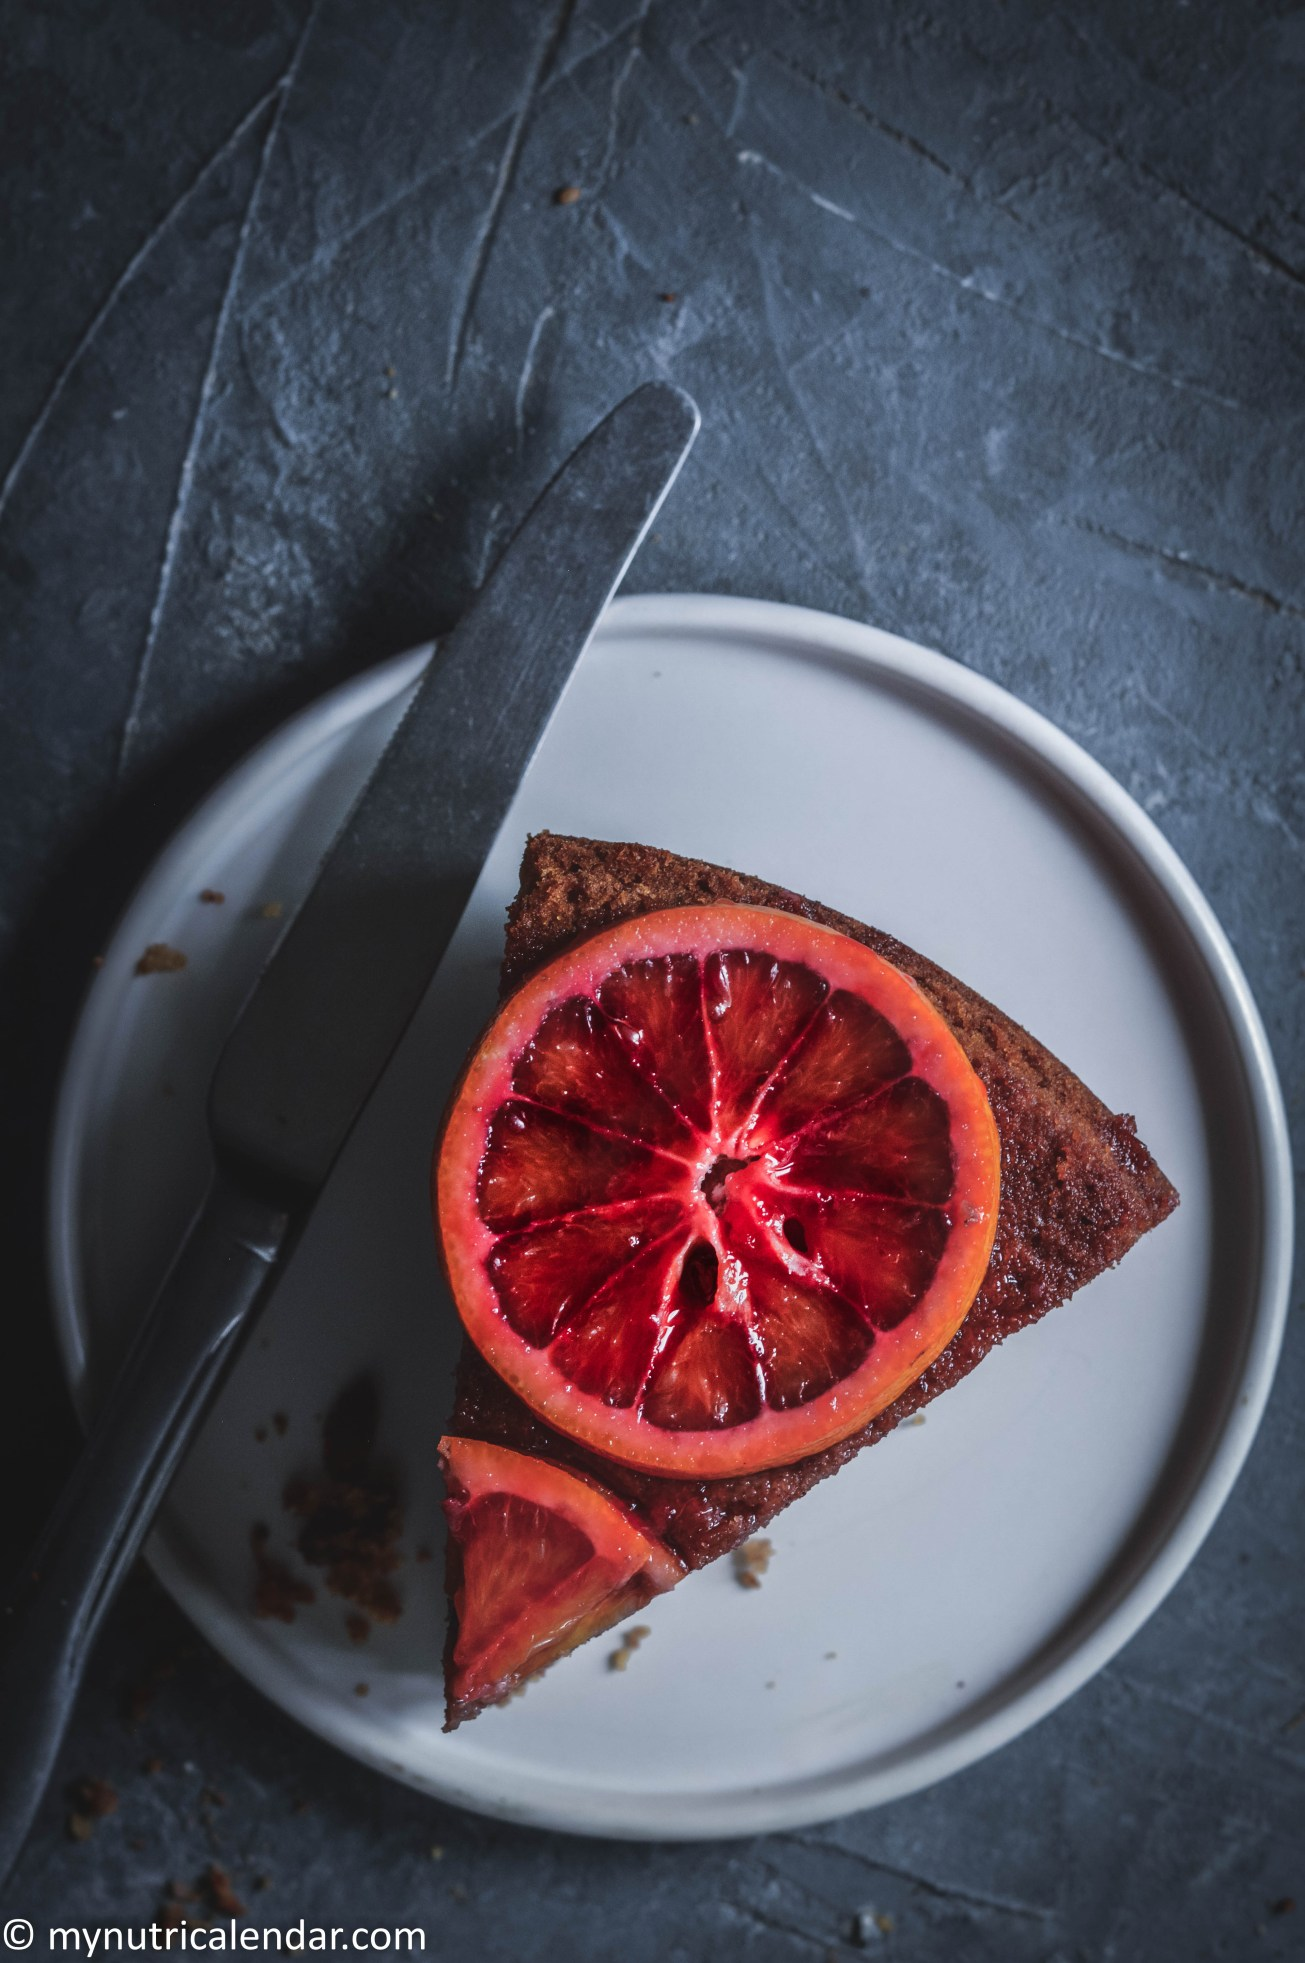 blood-orange-cake-chocolate-chips-raisins-no-sugar-9